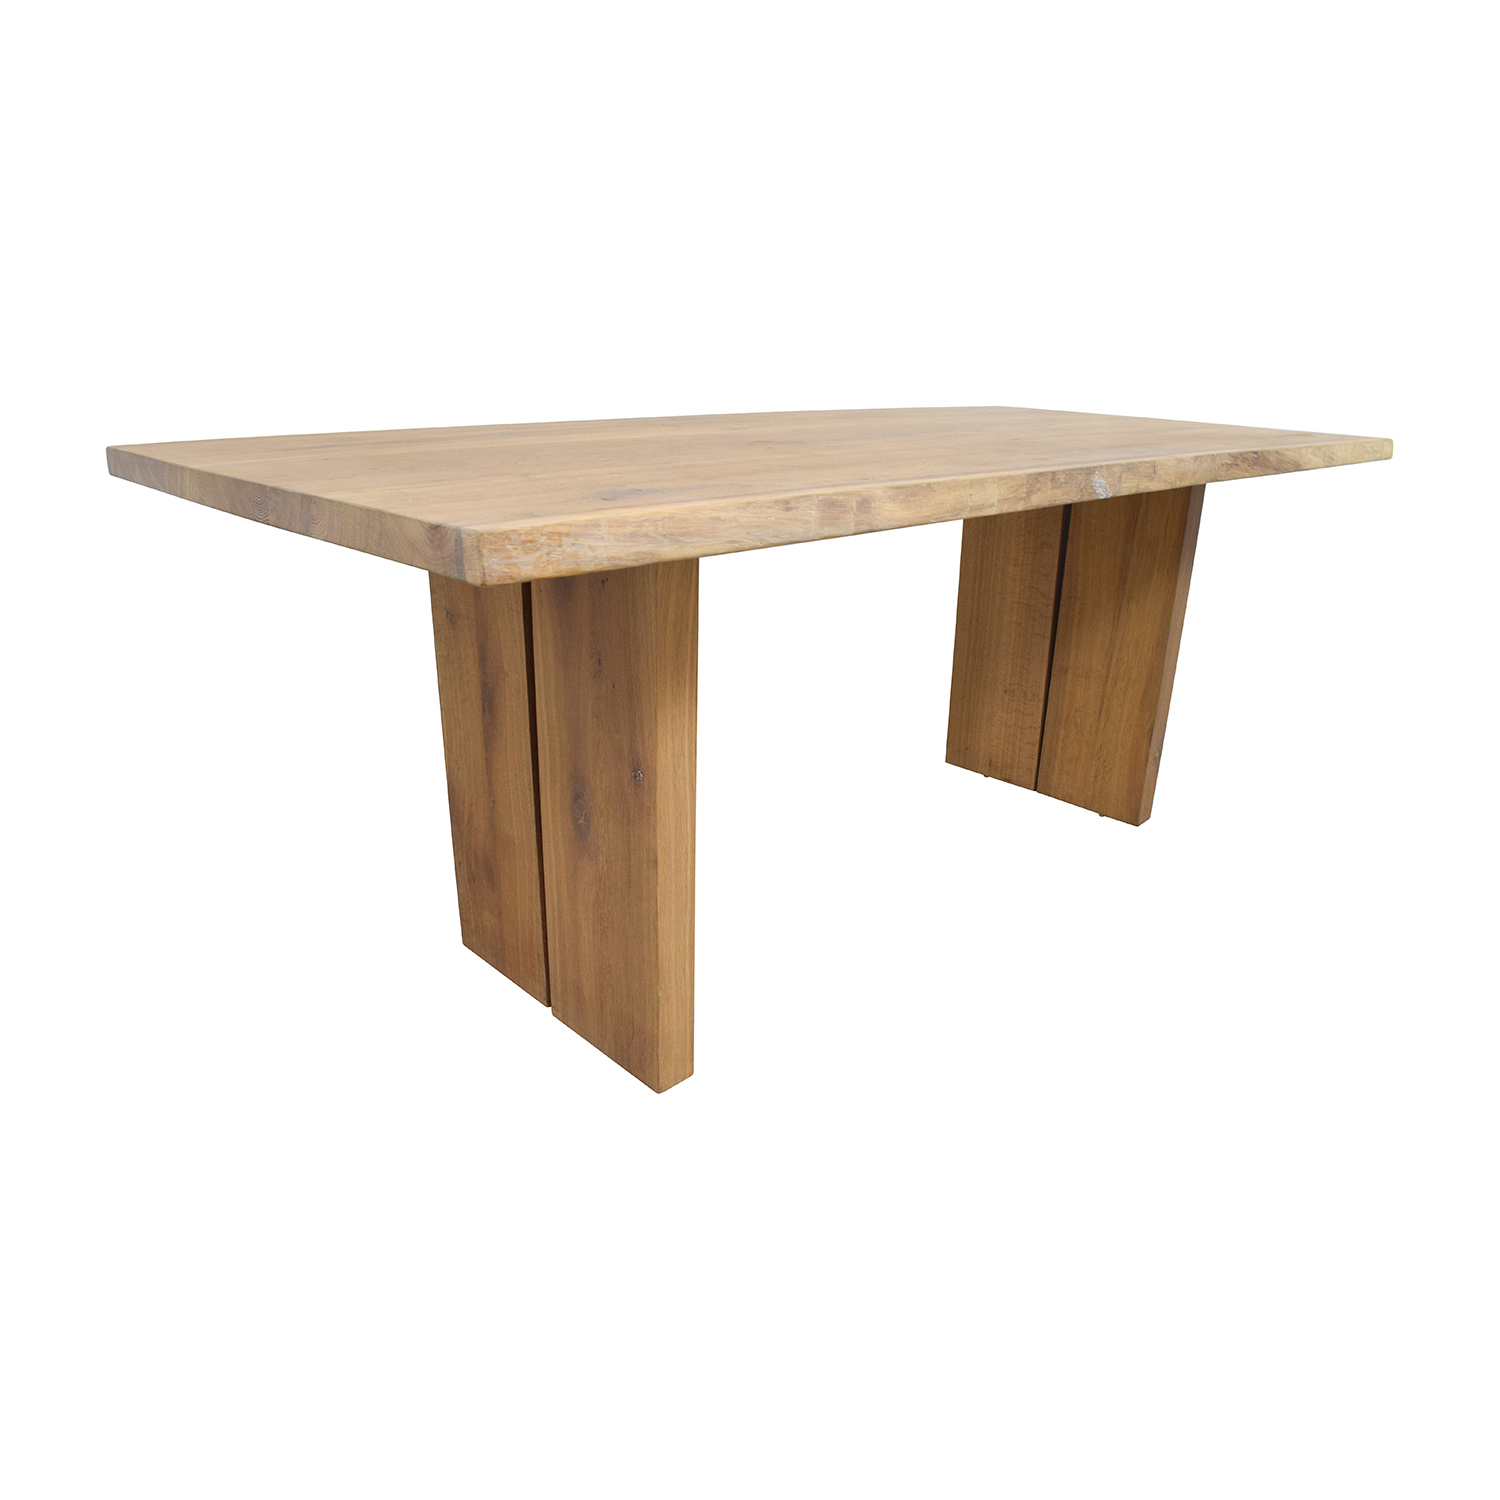 54 off modern wood plank dining table tables for Wood modern dining table